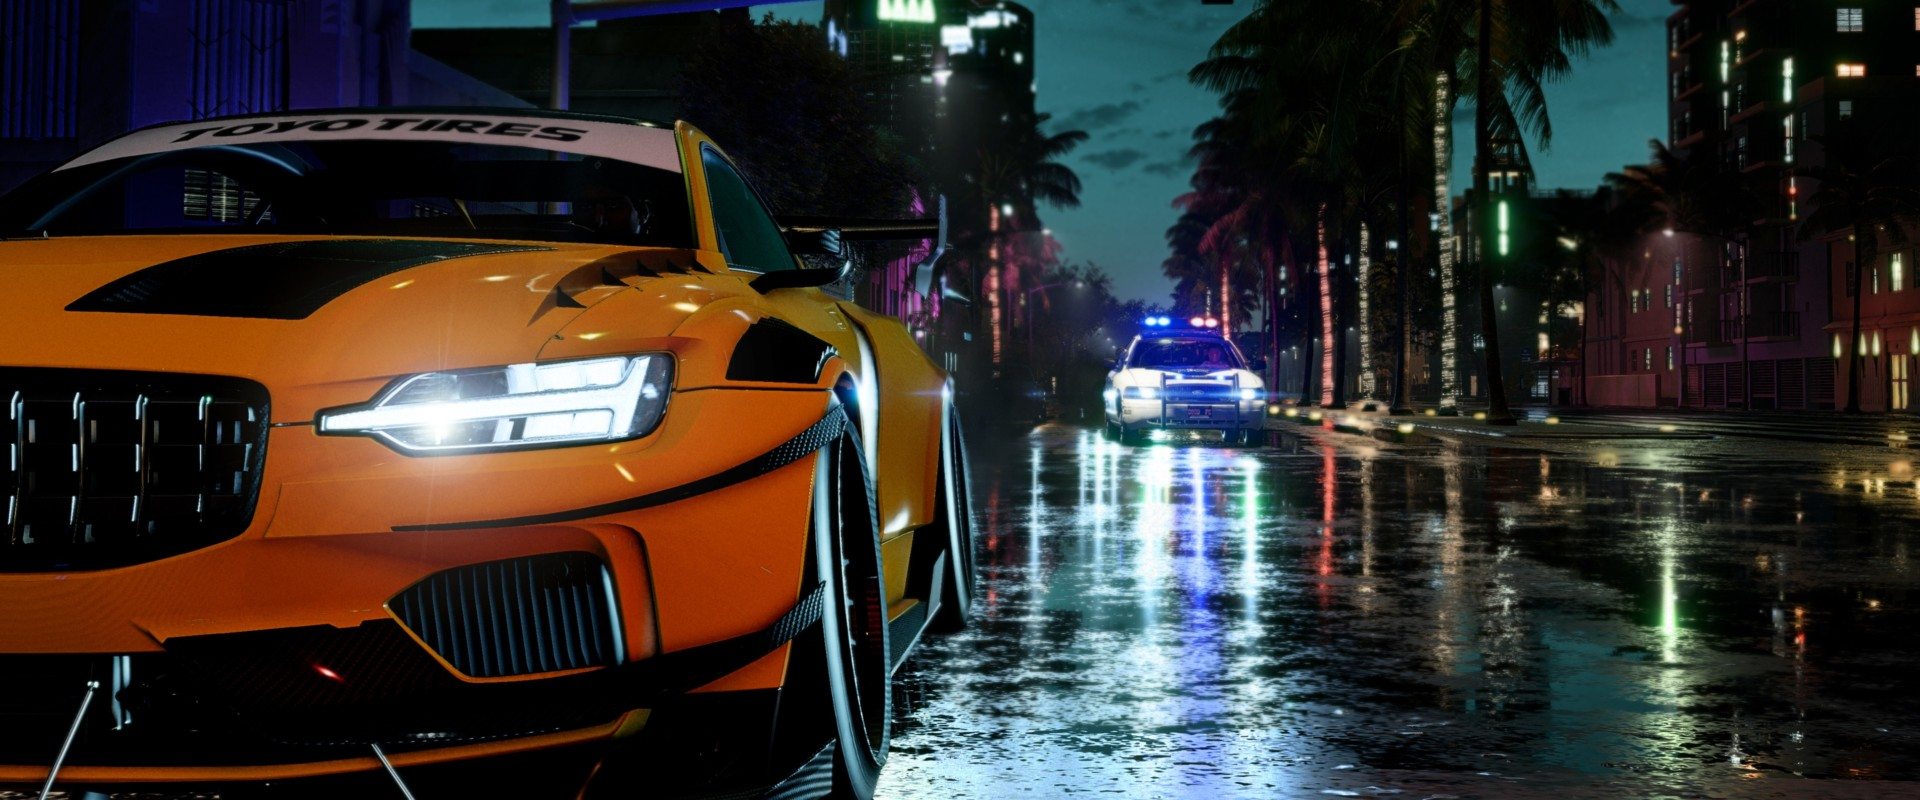 Electronic Arts confirma que ya está planeando junto a Criterion extender la saga de Need for Speed